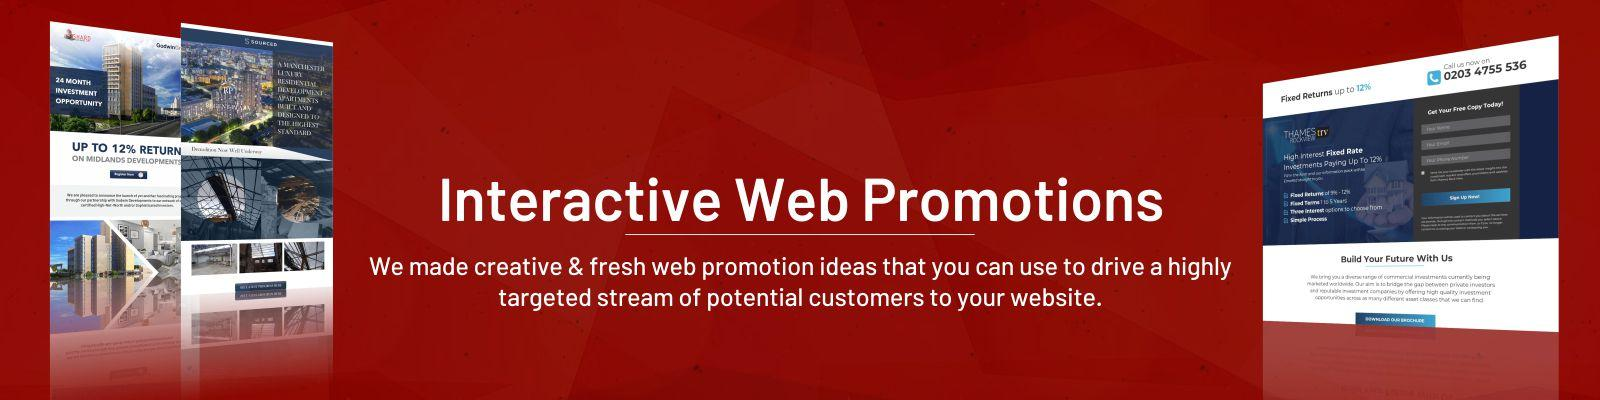 Interactive Web Promotions